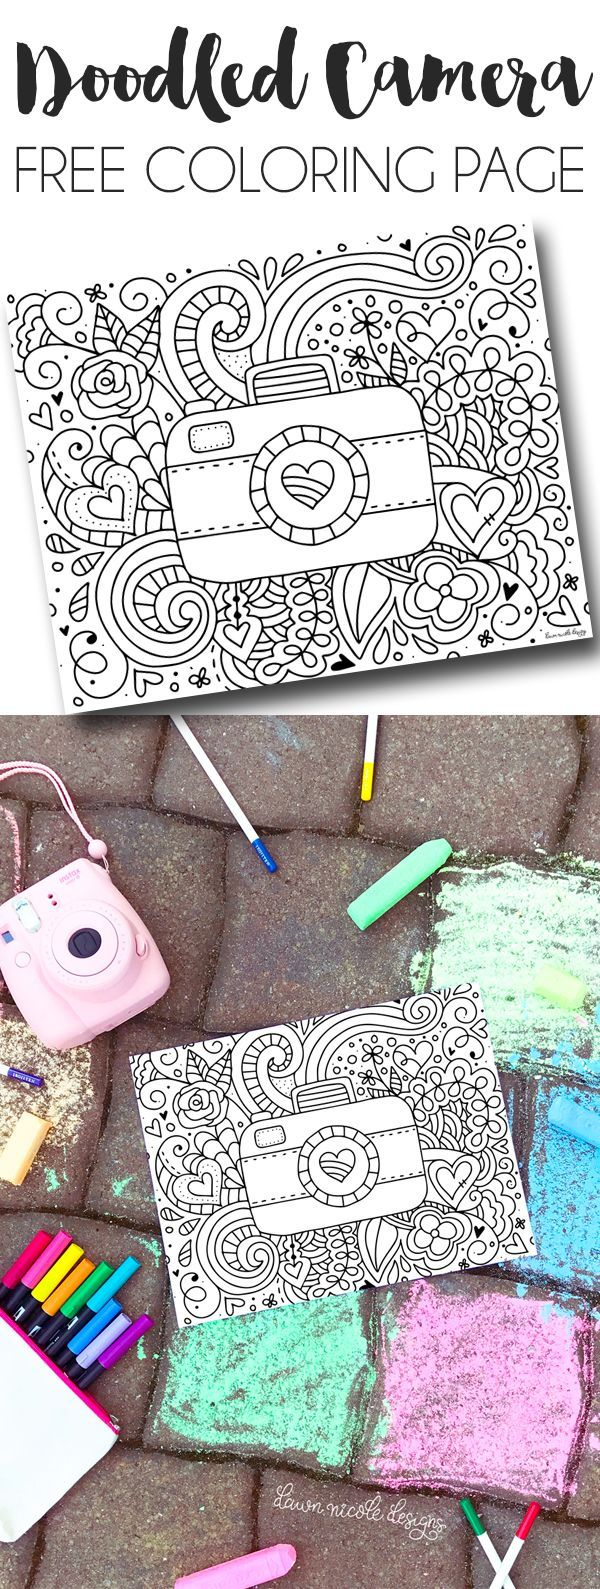 Doodled Camera Free Printable Coloring Page. This coloring page is fun for kids and adults alike. Grab some markers and enjoy! DawnNicoleDesigns.com